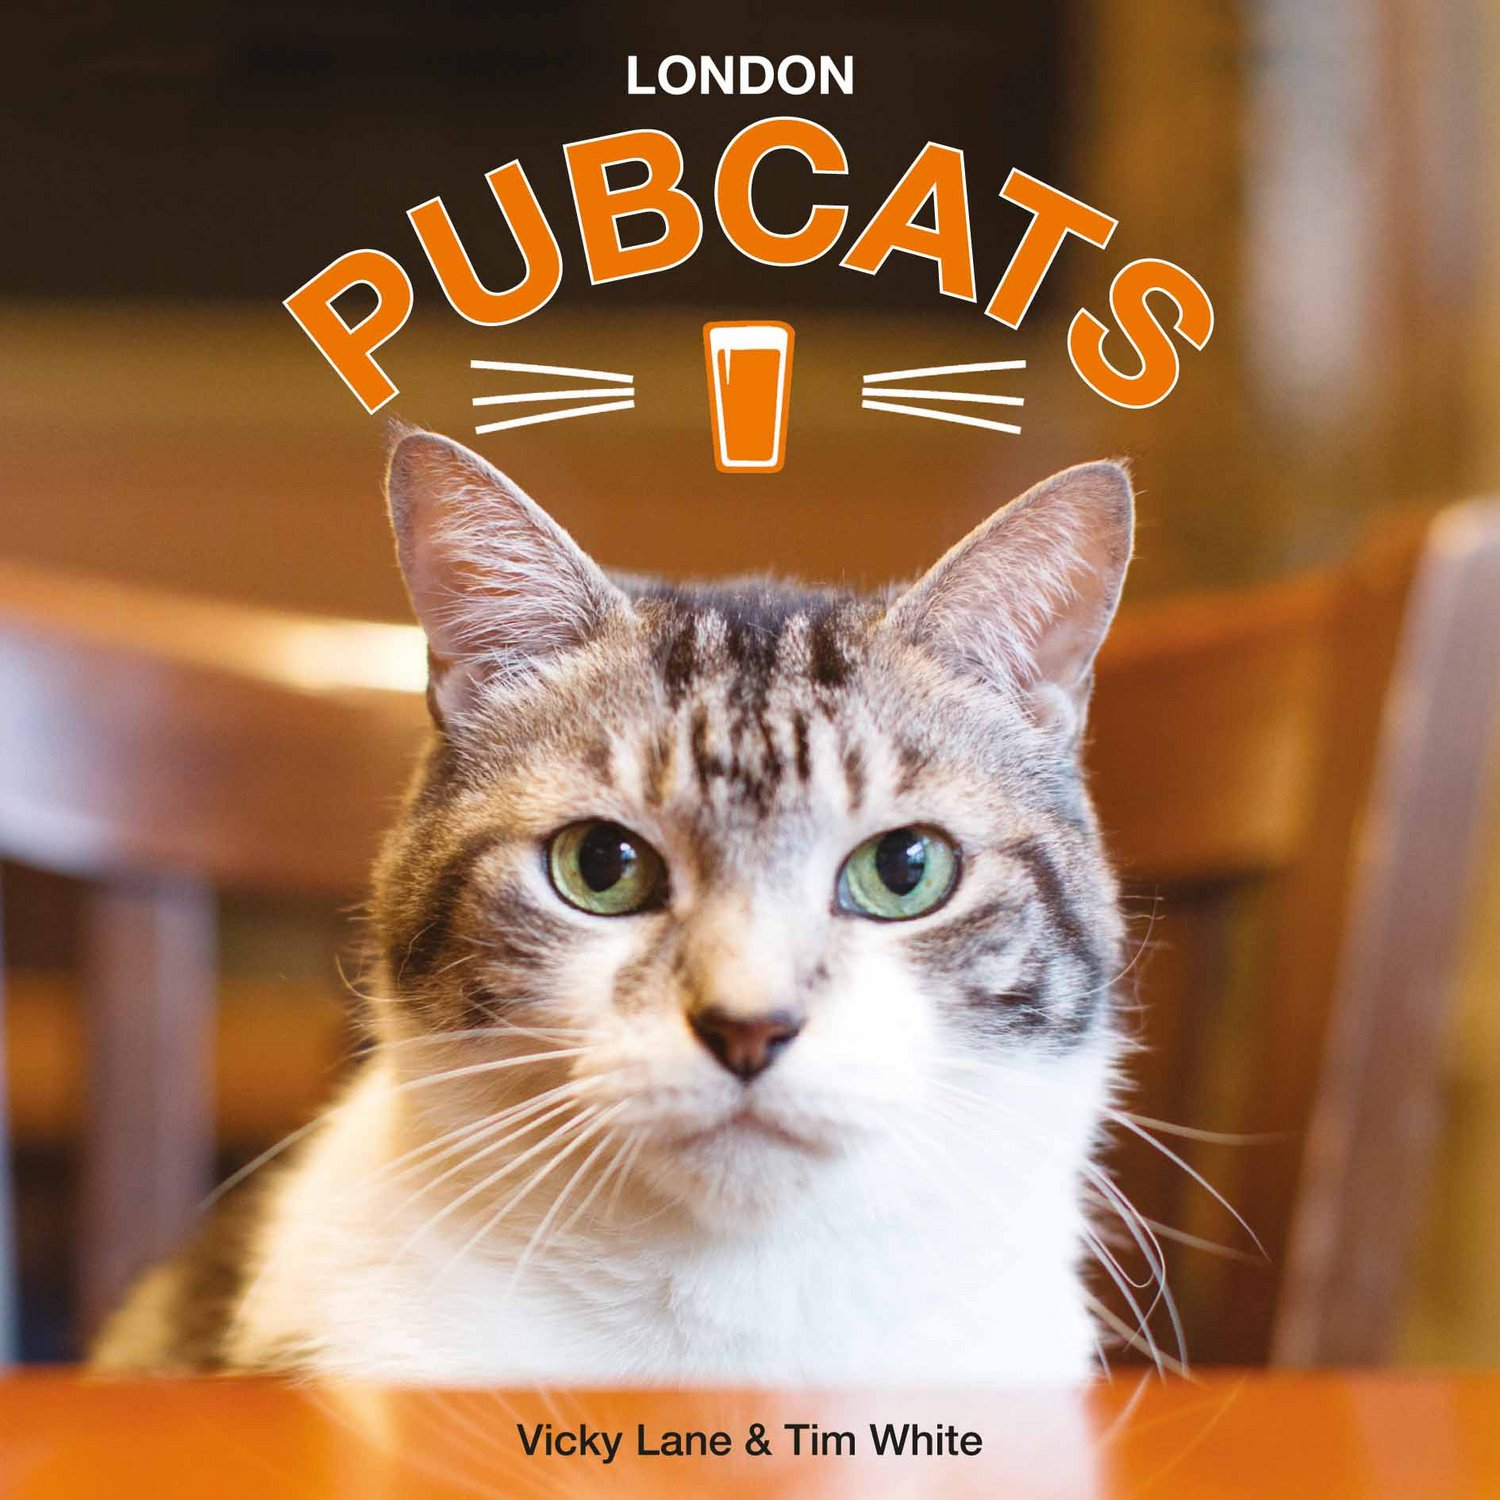 London Pubcats — Paradise Road